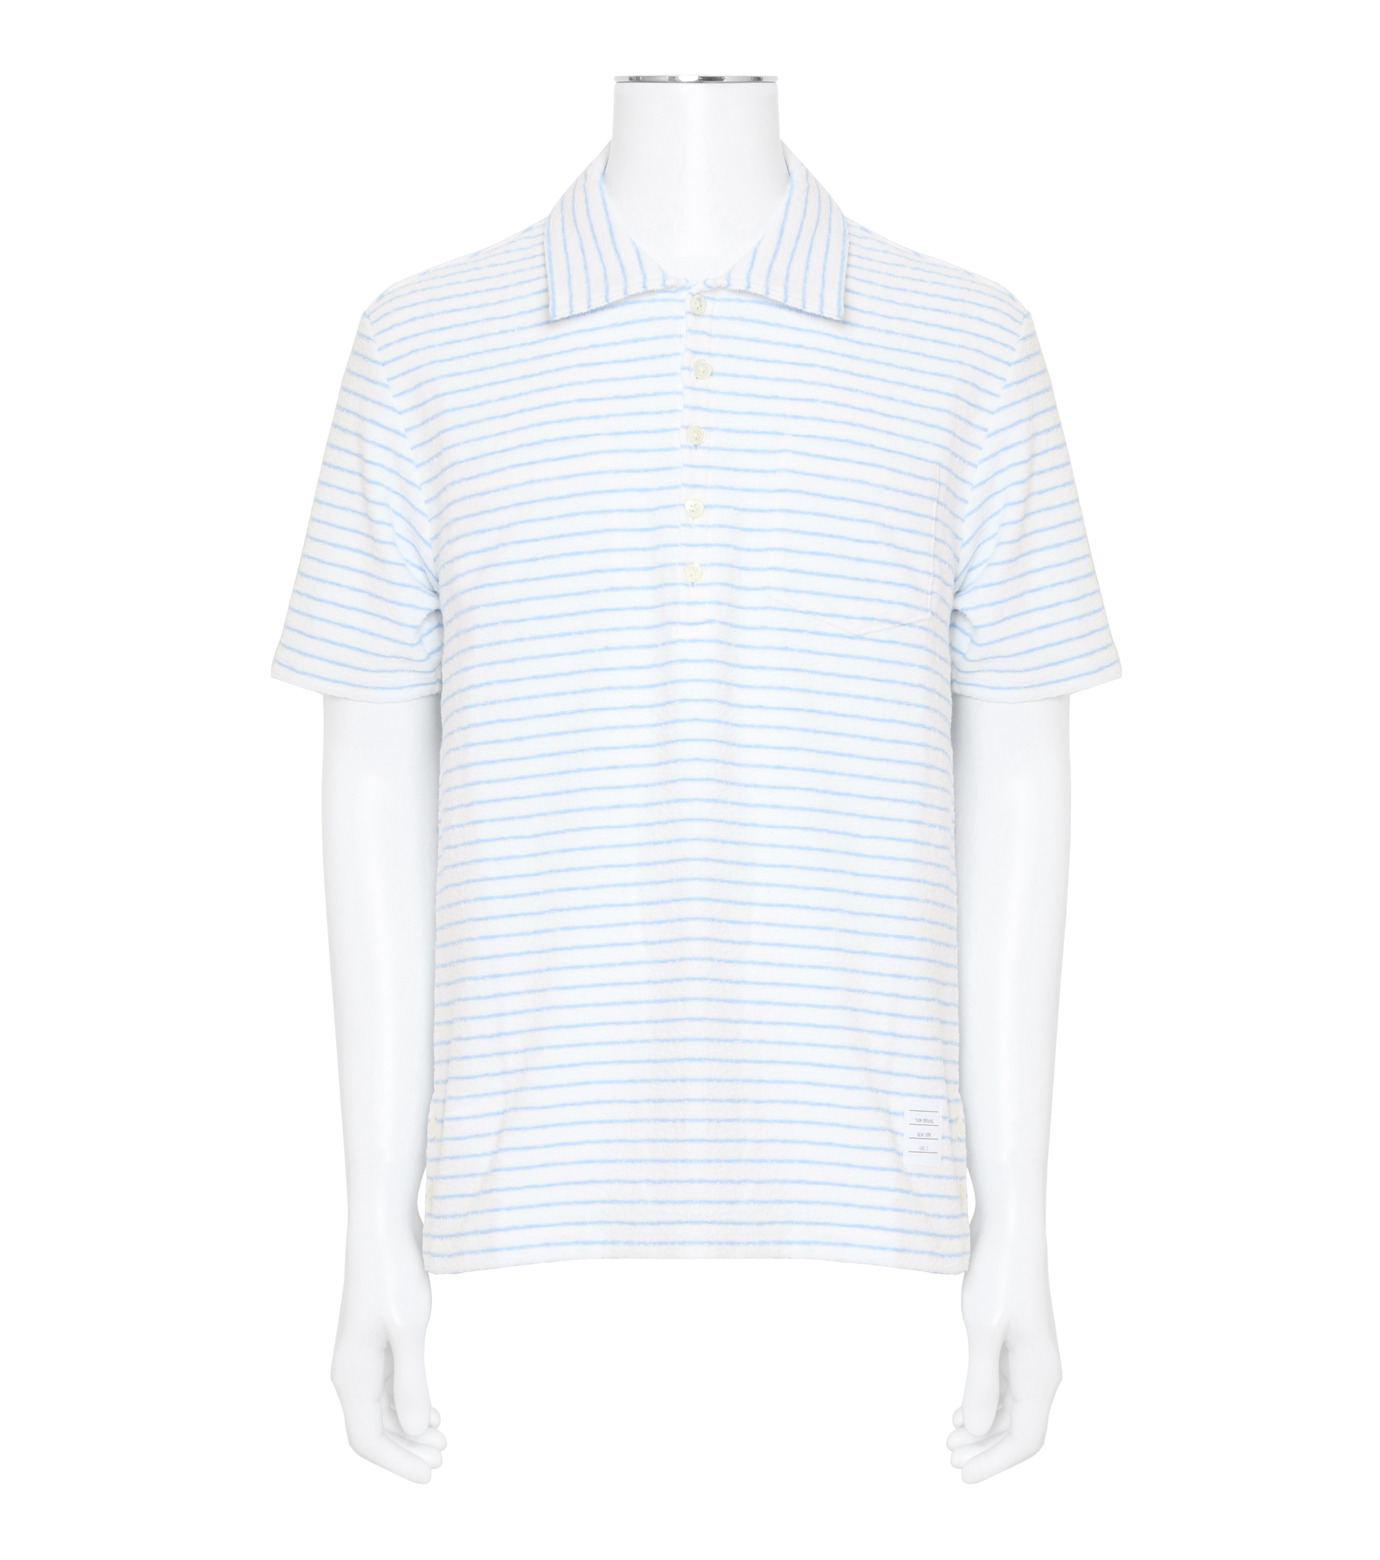 Thom Browne(トムブラウン)のChalk Stripe Polo-WHITE(カットソー/cut and sewn)-MJP032A01429-4 拡大詳細画像1